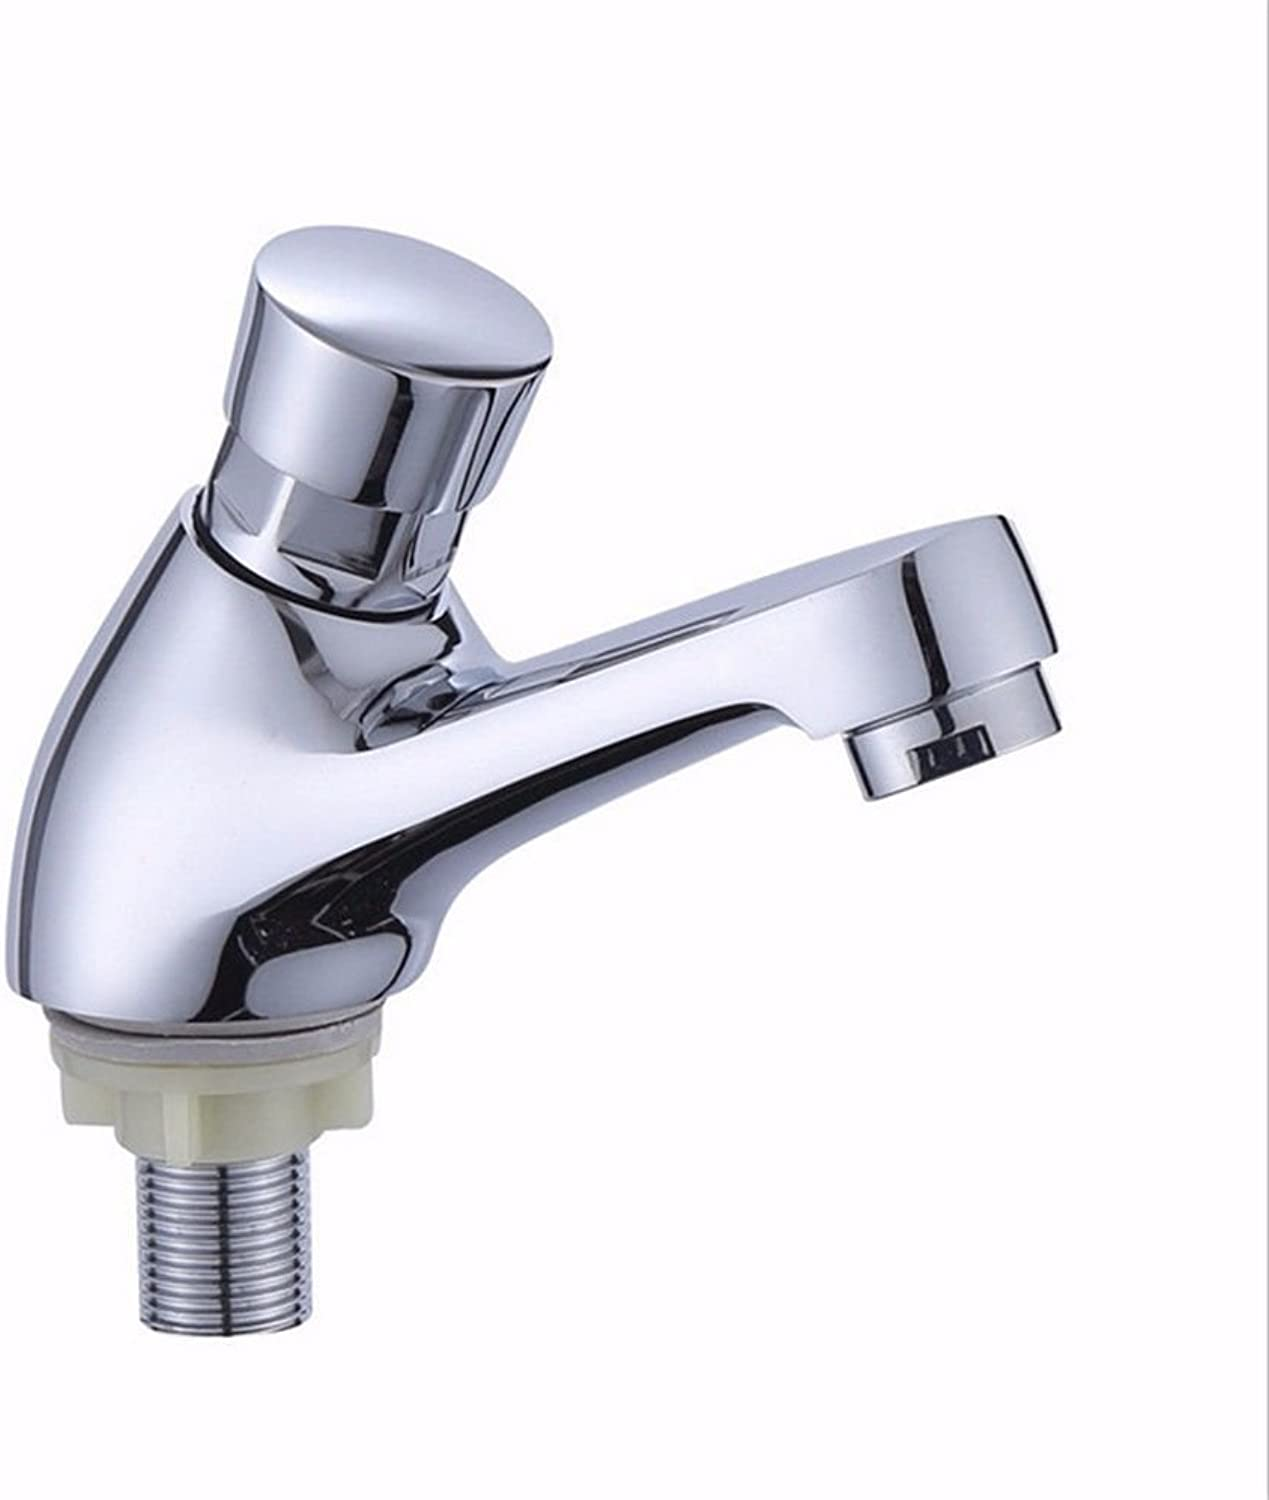 LIANTIAN Copper Single Hole Single Cold delay Basin Faucet????Kitchen Bathroom Bathroom Basin Faucet Simple Environmental Predection Energy Saving Low Lead Bathroom Sink Taps